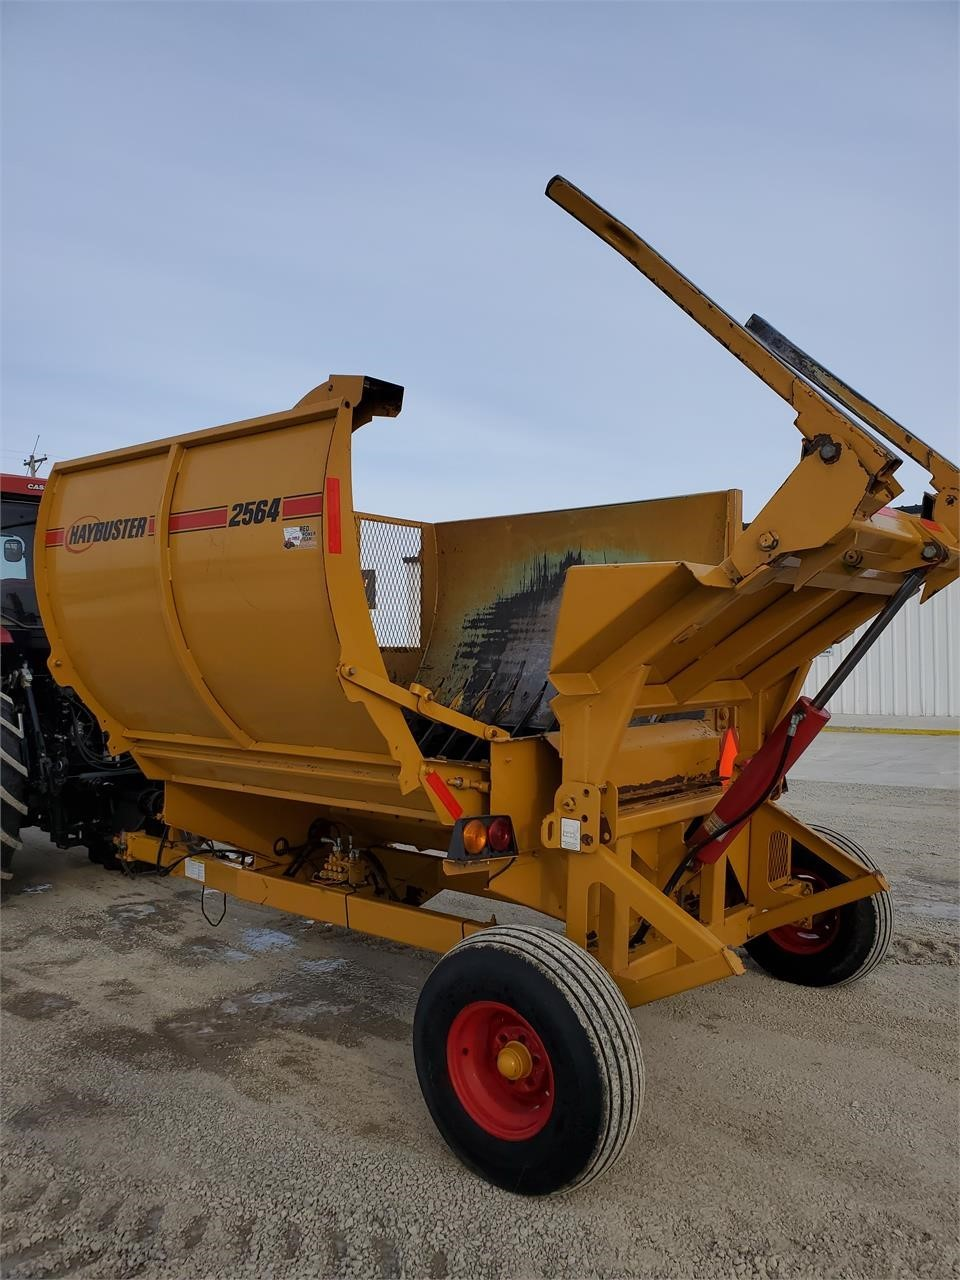 2012 Haybuster 2564 Grinders and Mixer